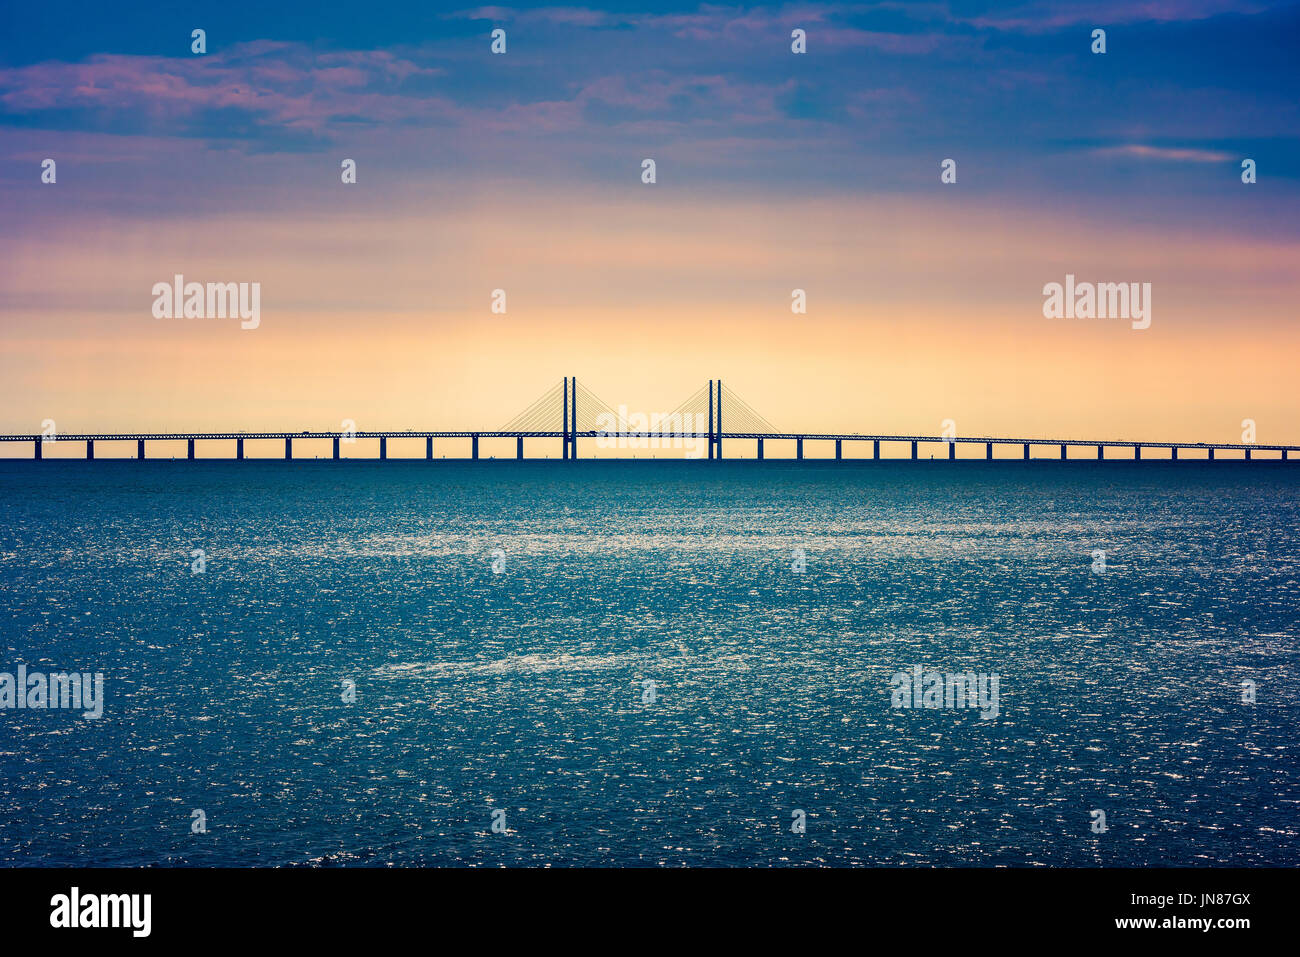 Oresund Bridge crossing the Oresund Strait, connecting Copenhagen Denmark and Malmo Sweden - Stock Image